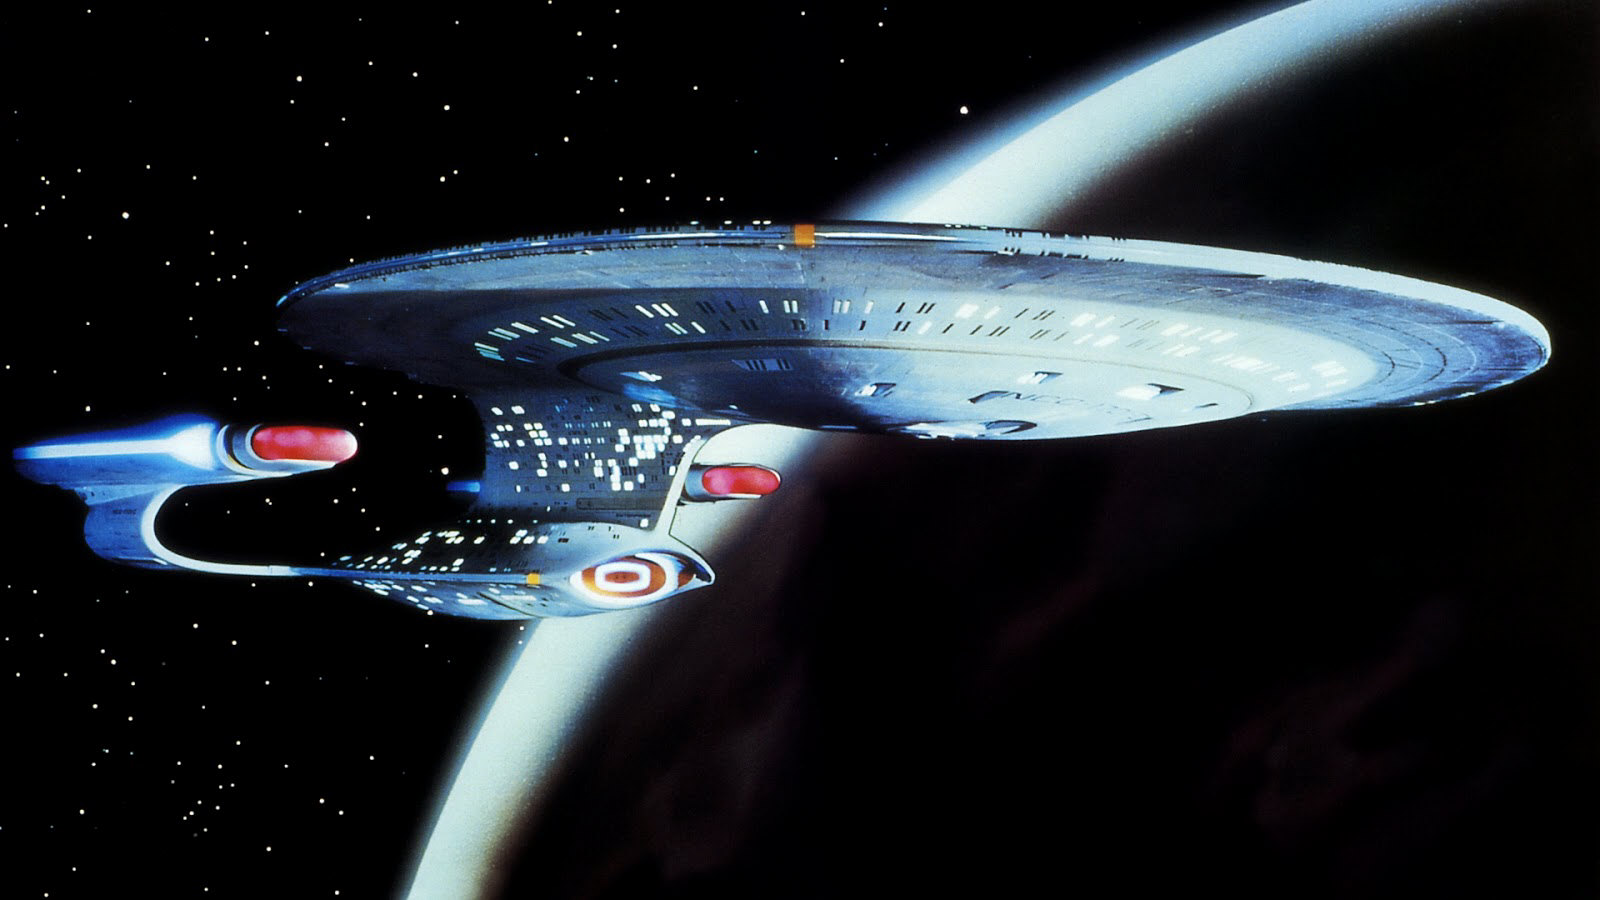 Crude Fiction: Formal Complaints aboard the Enterprise